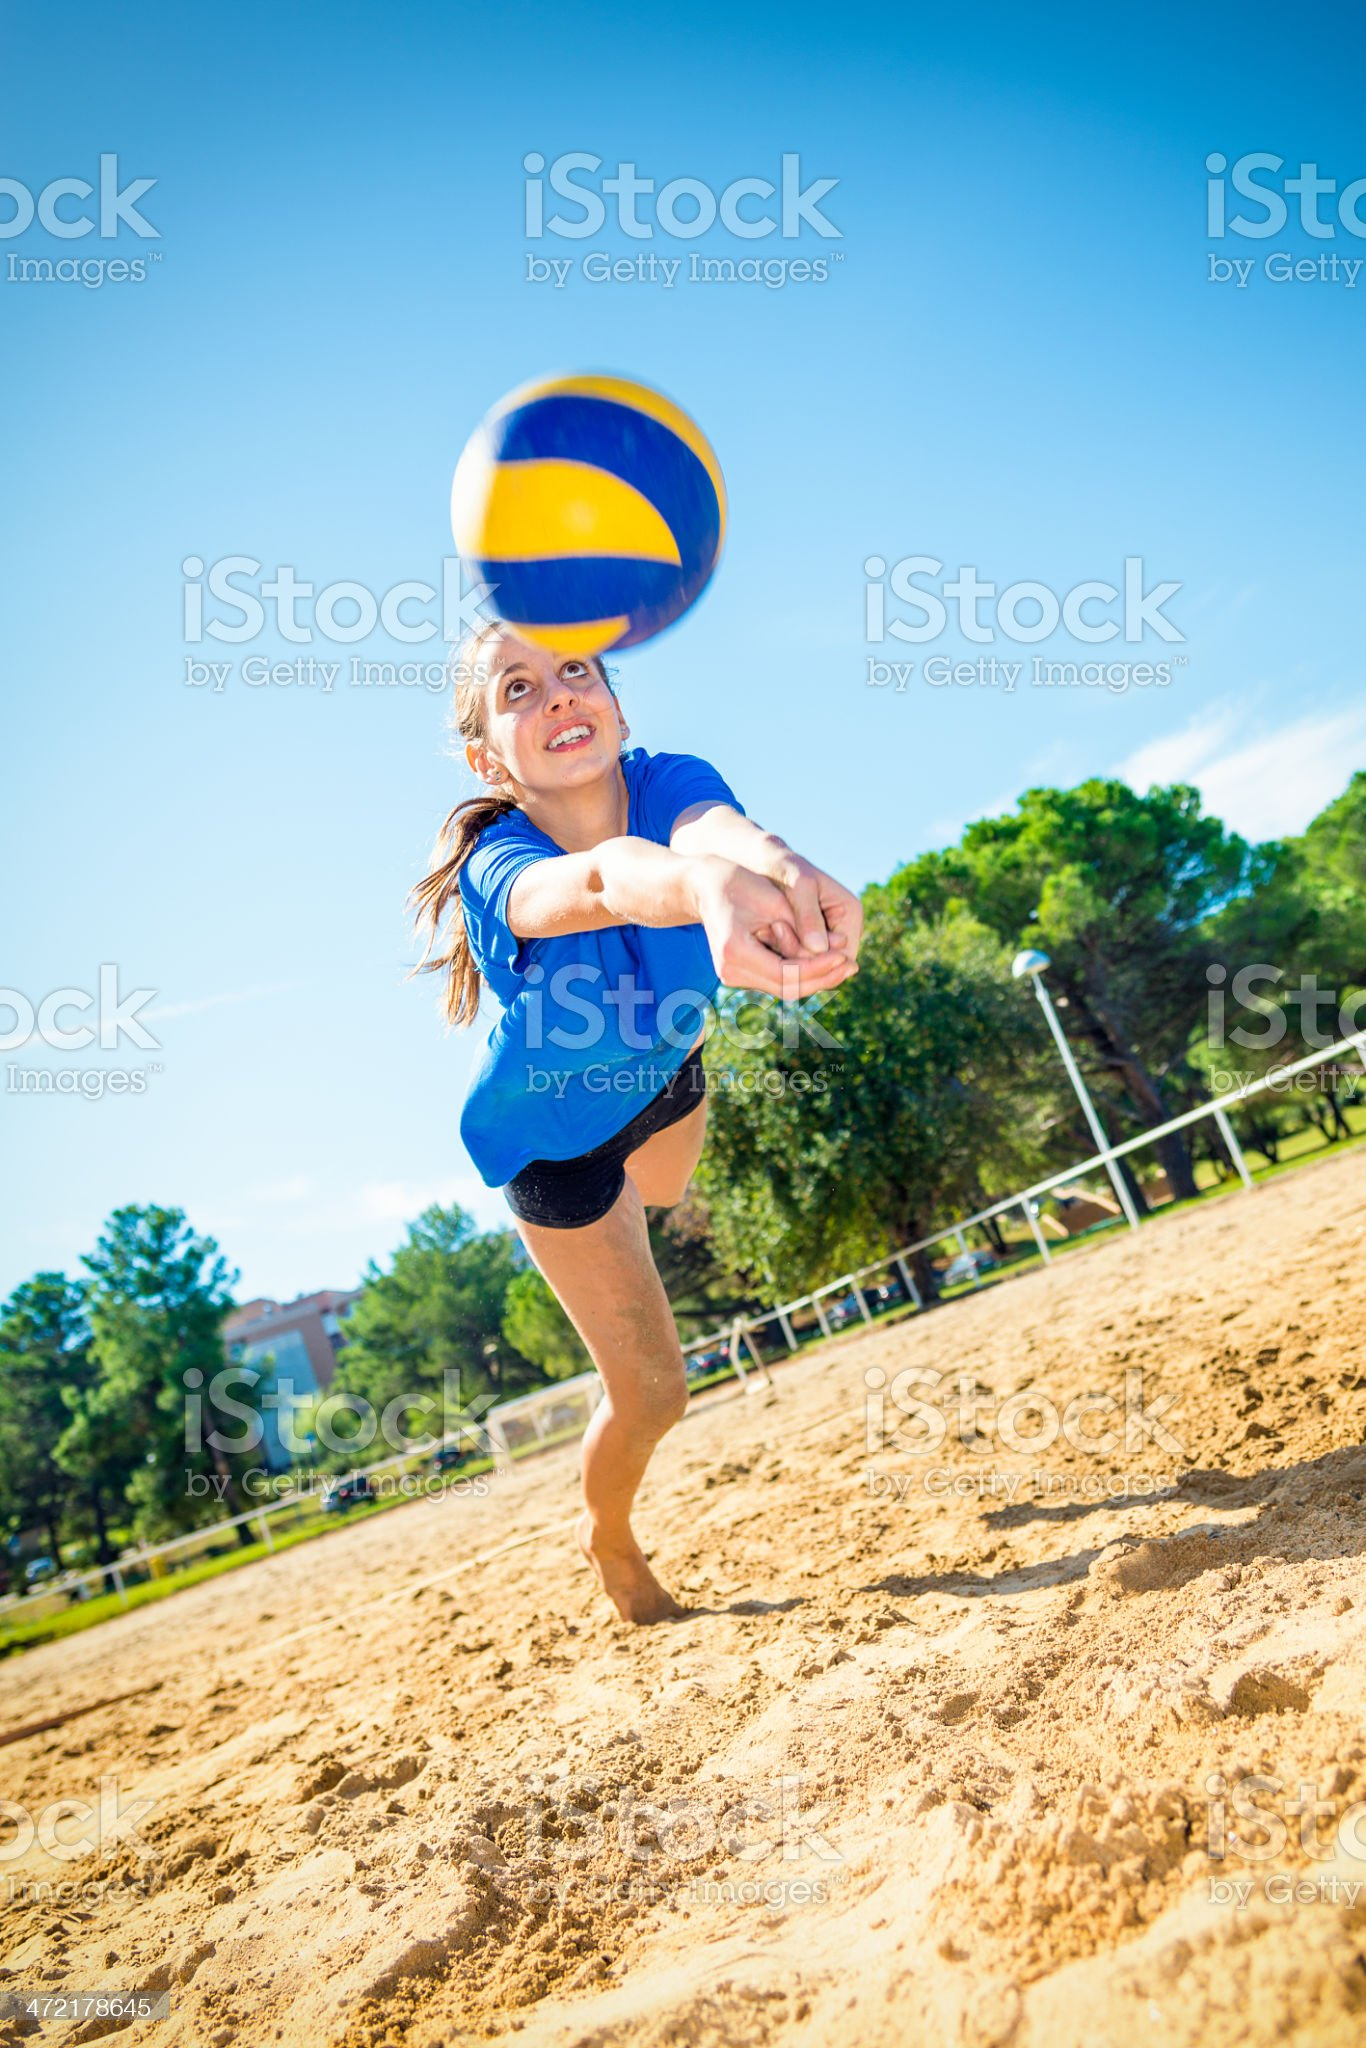 Saving the ball royalty-free stock photo